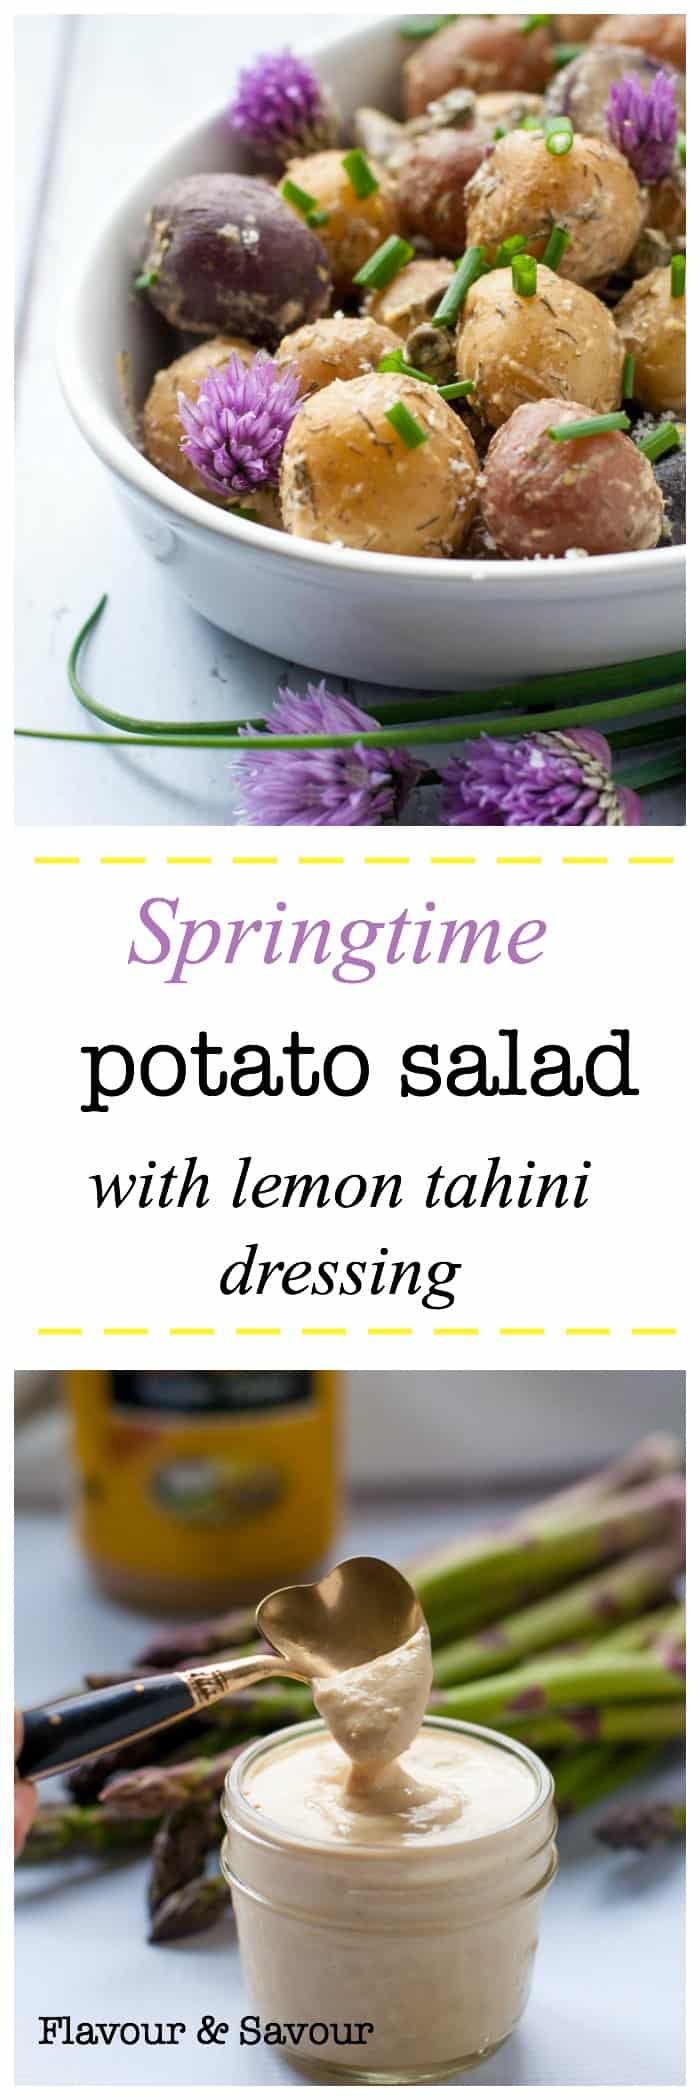 This Springtime Potato Salad is made with baby potatoes, capers, dill, chives, Dijon, and a light, creamy lemon-tahini dressing. It's mayo-free, too!